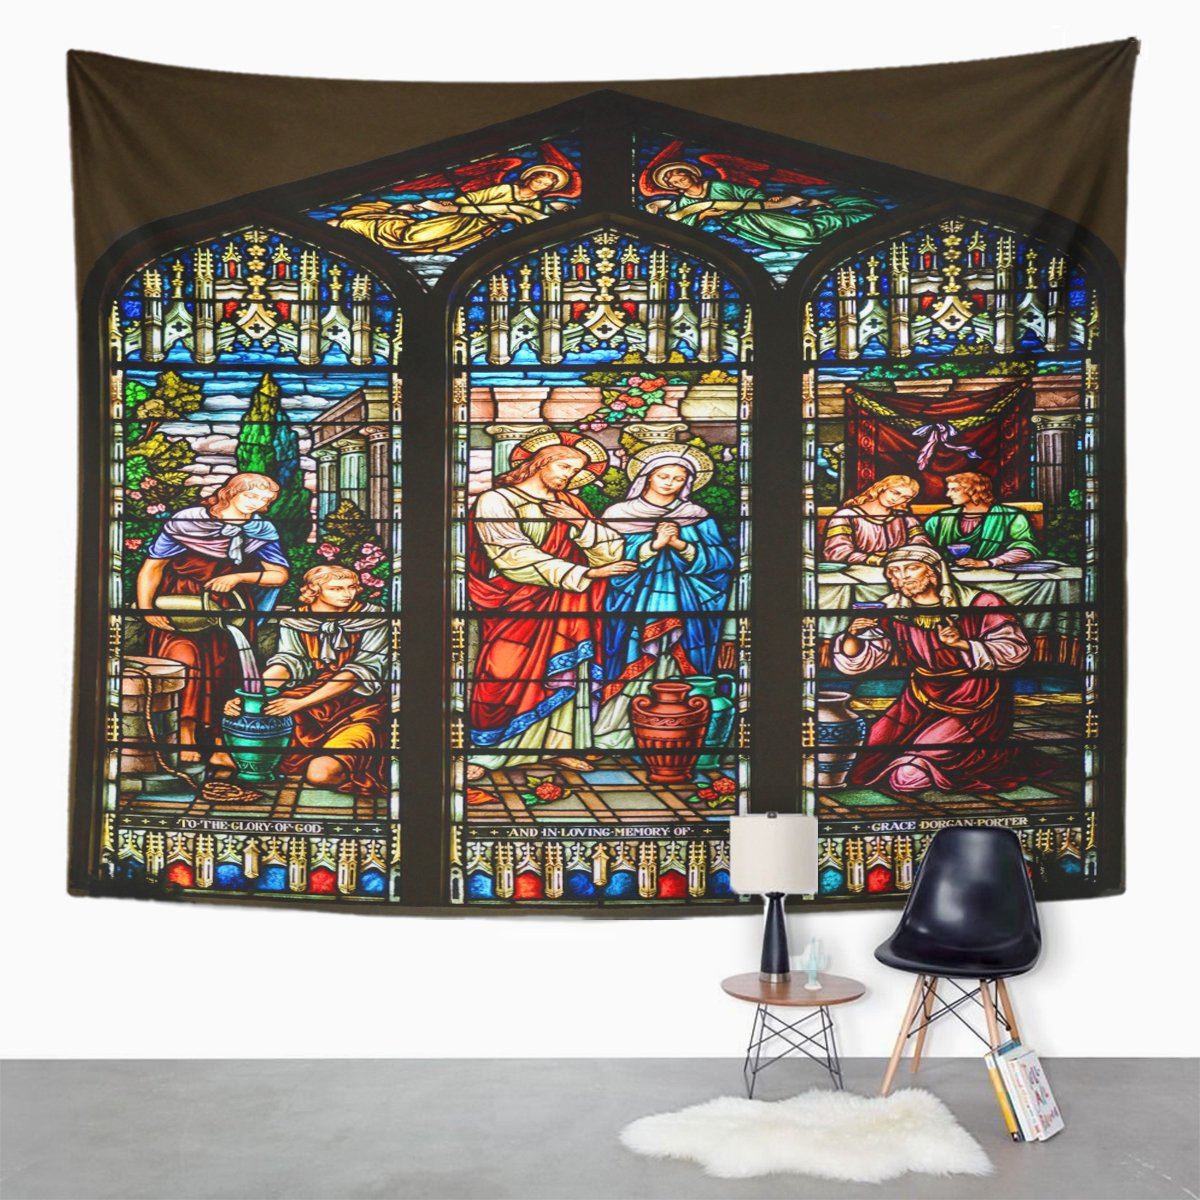 Amazon Emvency Tapestry Stained Glass Window Of St Paul Episcopal Church Key Home Decor Wall Hanging For Living Room Bedroom Dorm 50x60 Inches